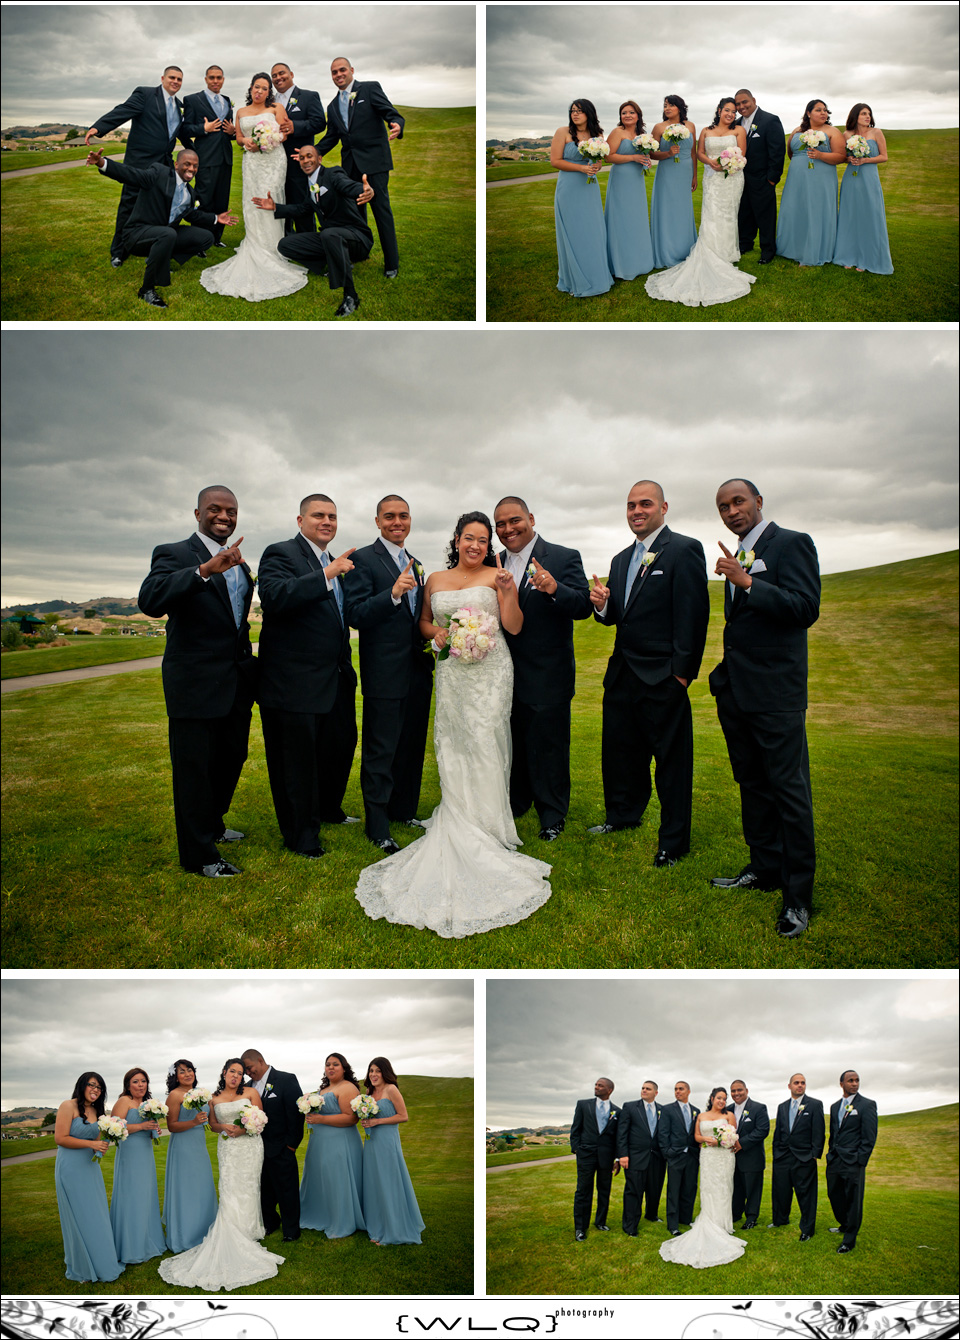 JessicaMarioWedding-collage20